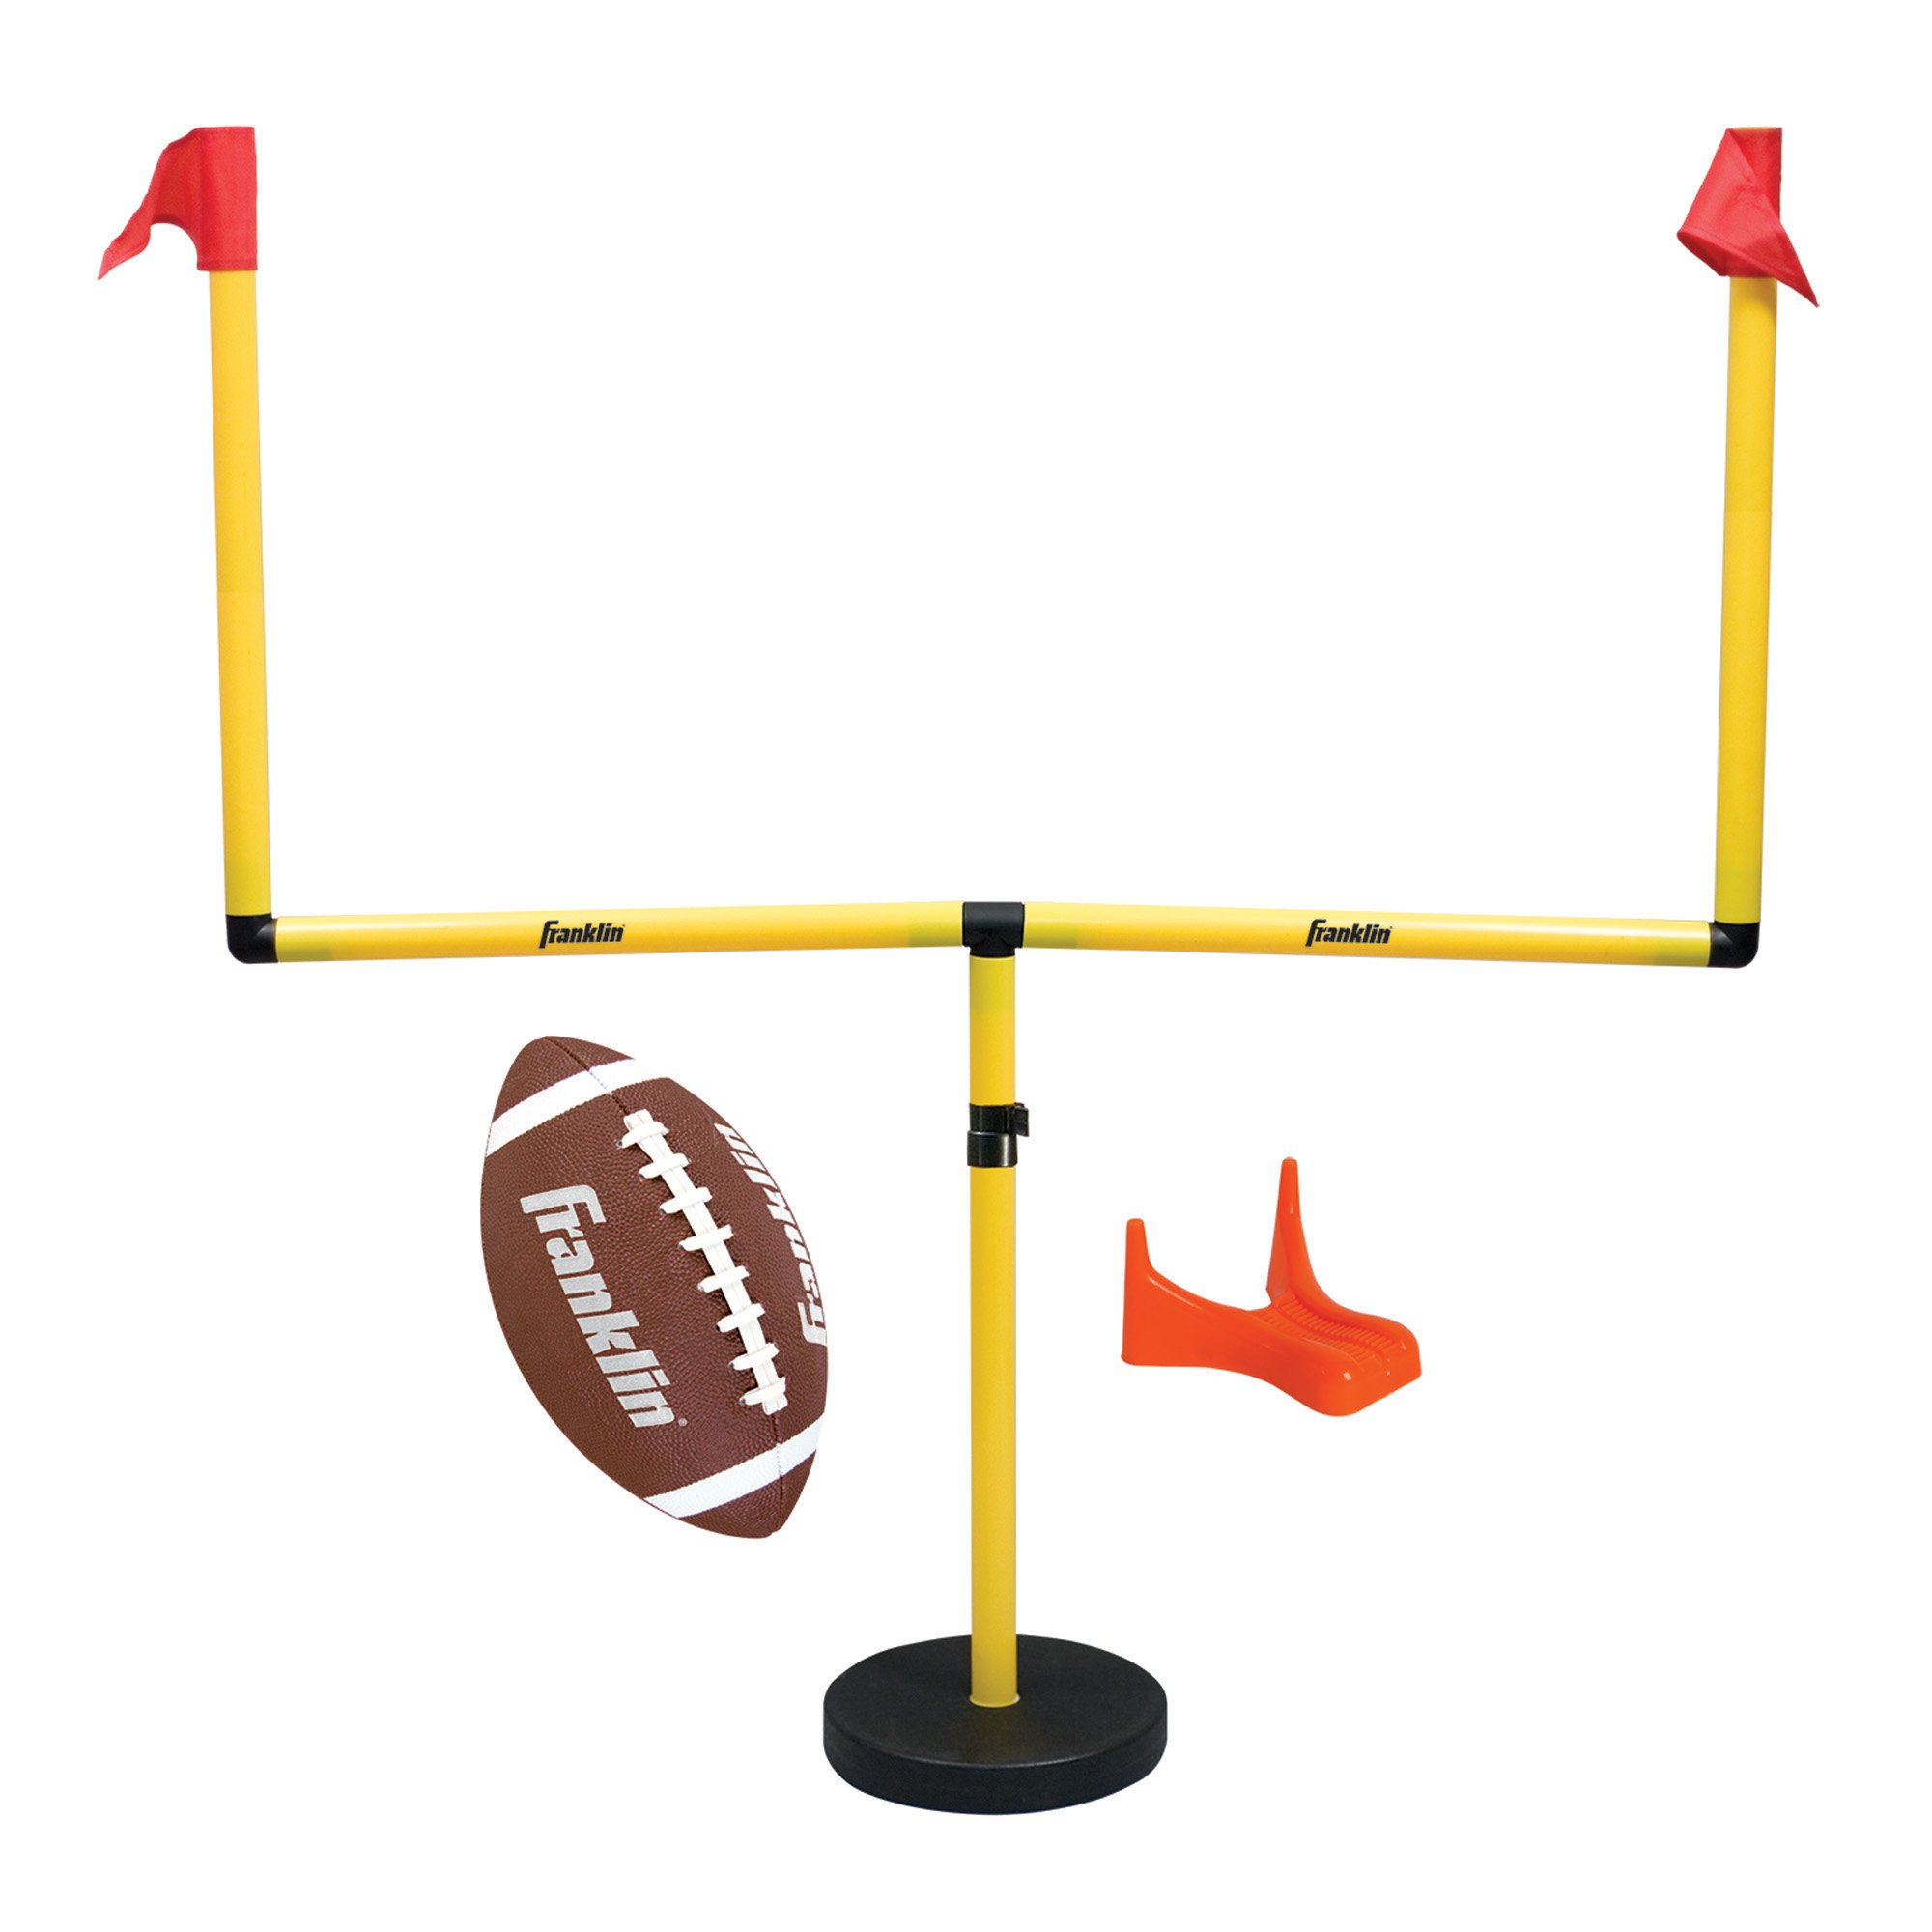 Franklin Sports Youth Football Goal-Post Set - Kids' Football Goal Post with Mini Football - Fun Football Goal for All Ages - Easy Assembly - Adjustable Height - Weighted Base by Franklin Sports